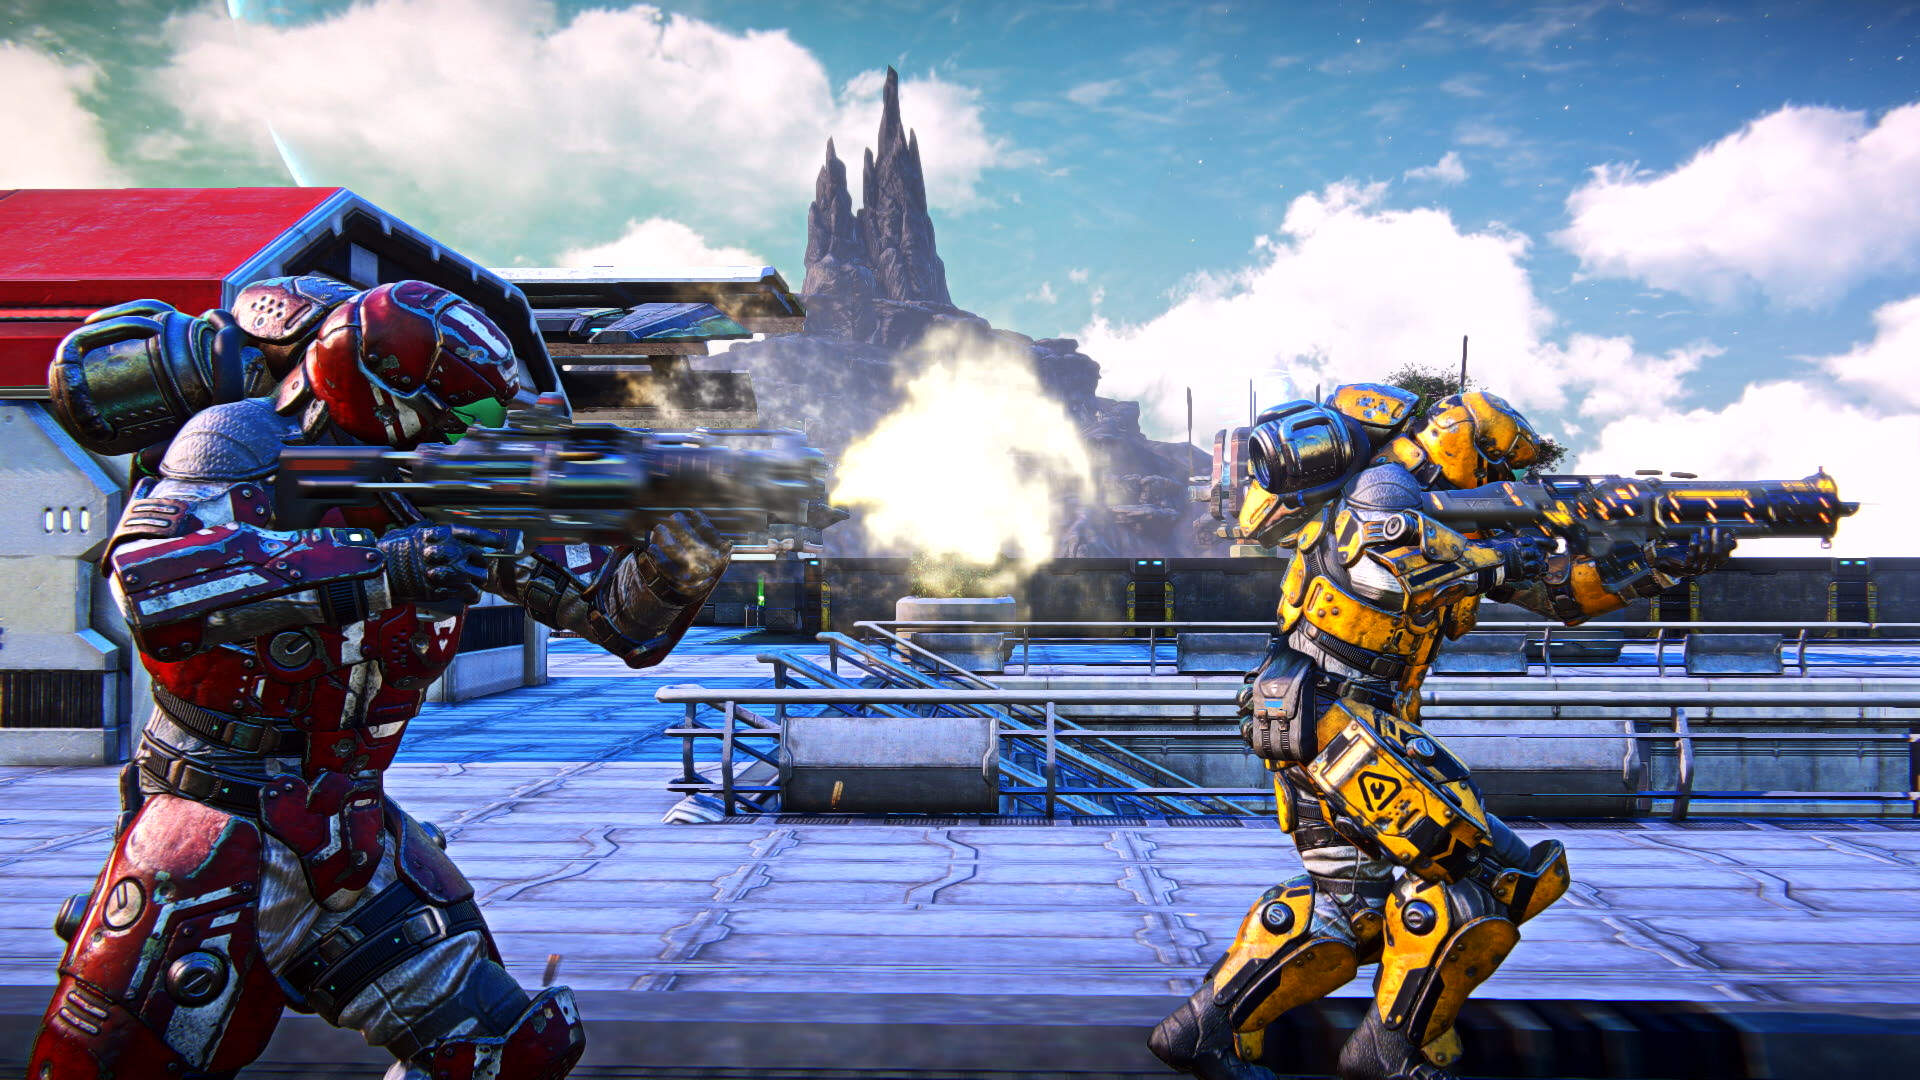 Z1 and PlanetSide Developer Daybreak Hit With Another Round of Layoffs